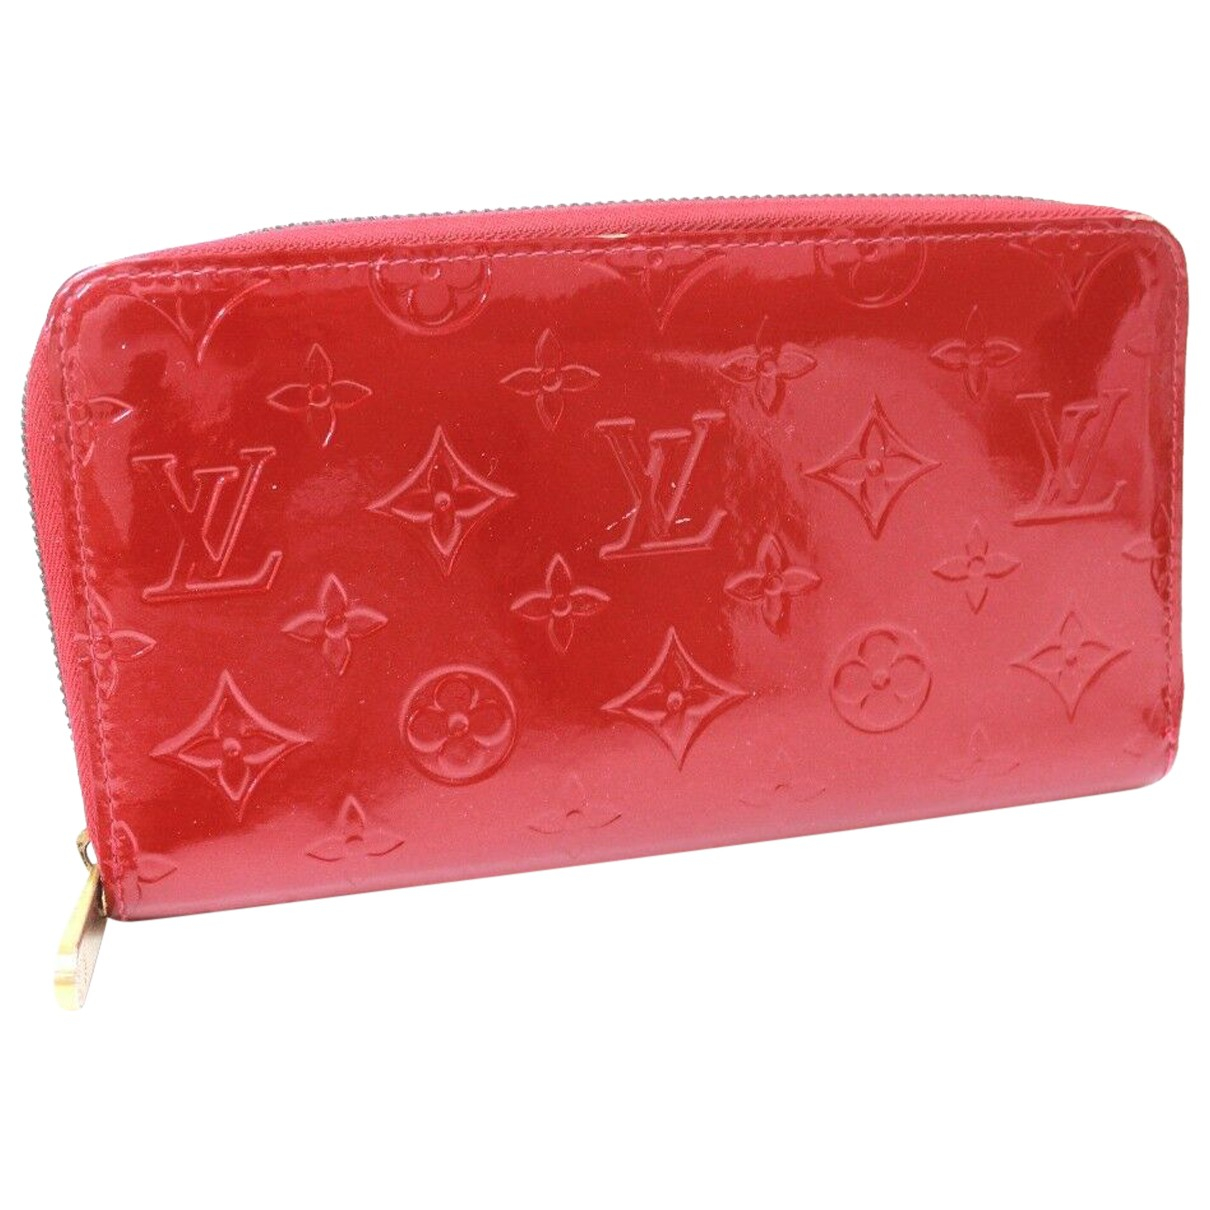 Louis Vuitton Zippy Red Patent leather wallet for Women N